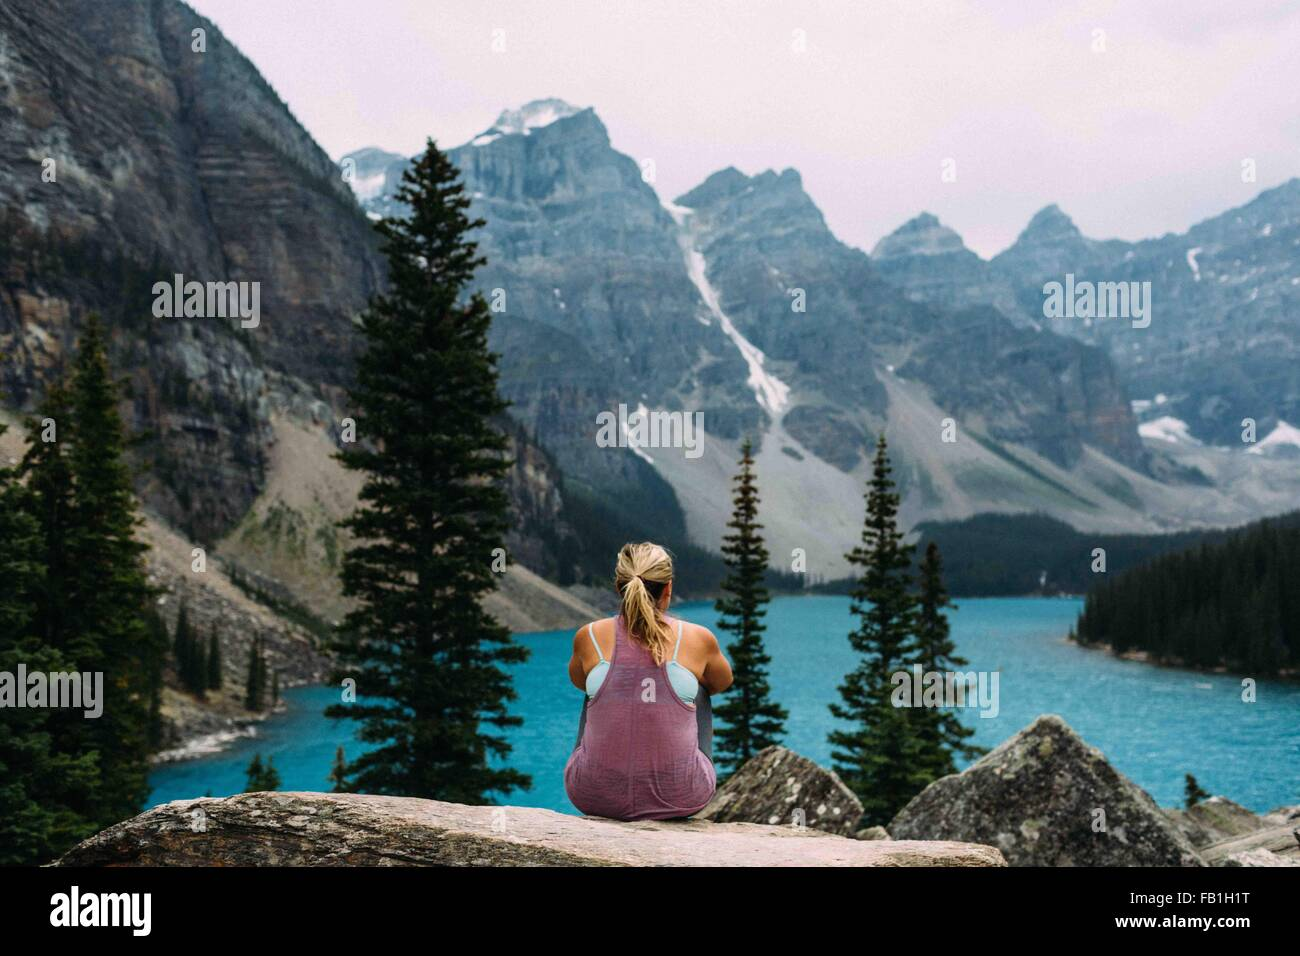 Rear view of mid adult woman on cliff edge looking at elevated view of Moraine lake, Banff National Park, Alberta - Stock Image